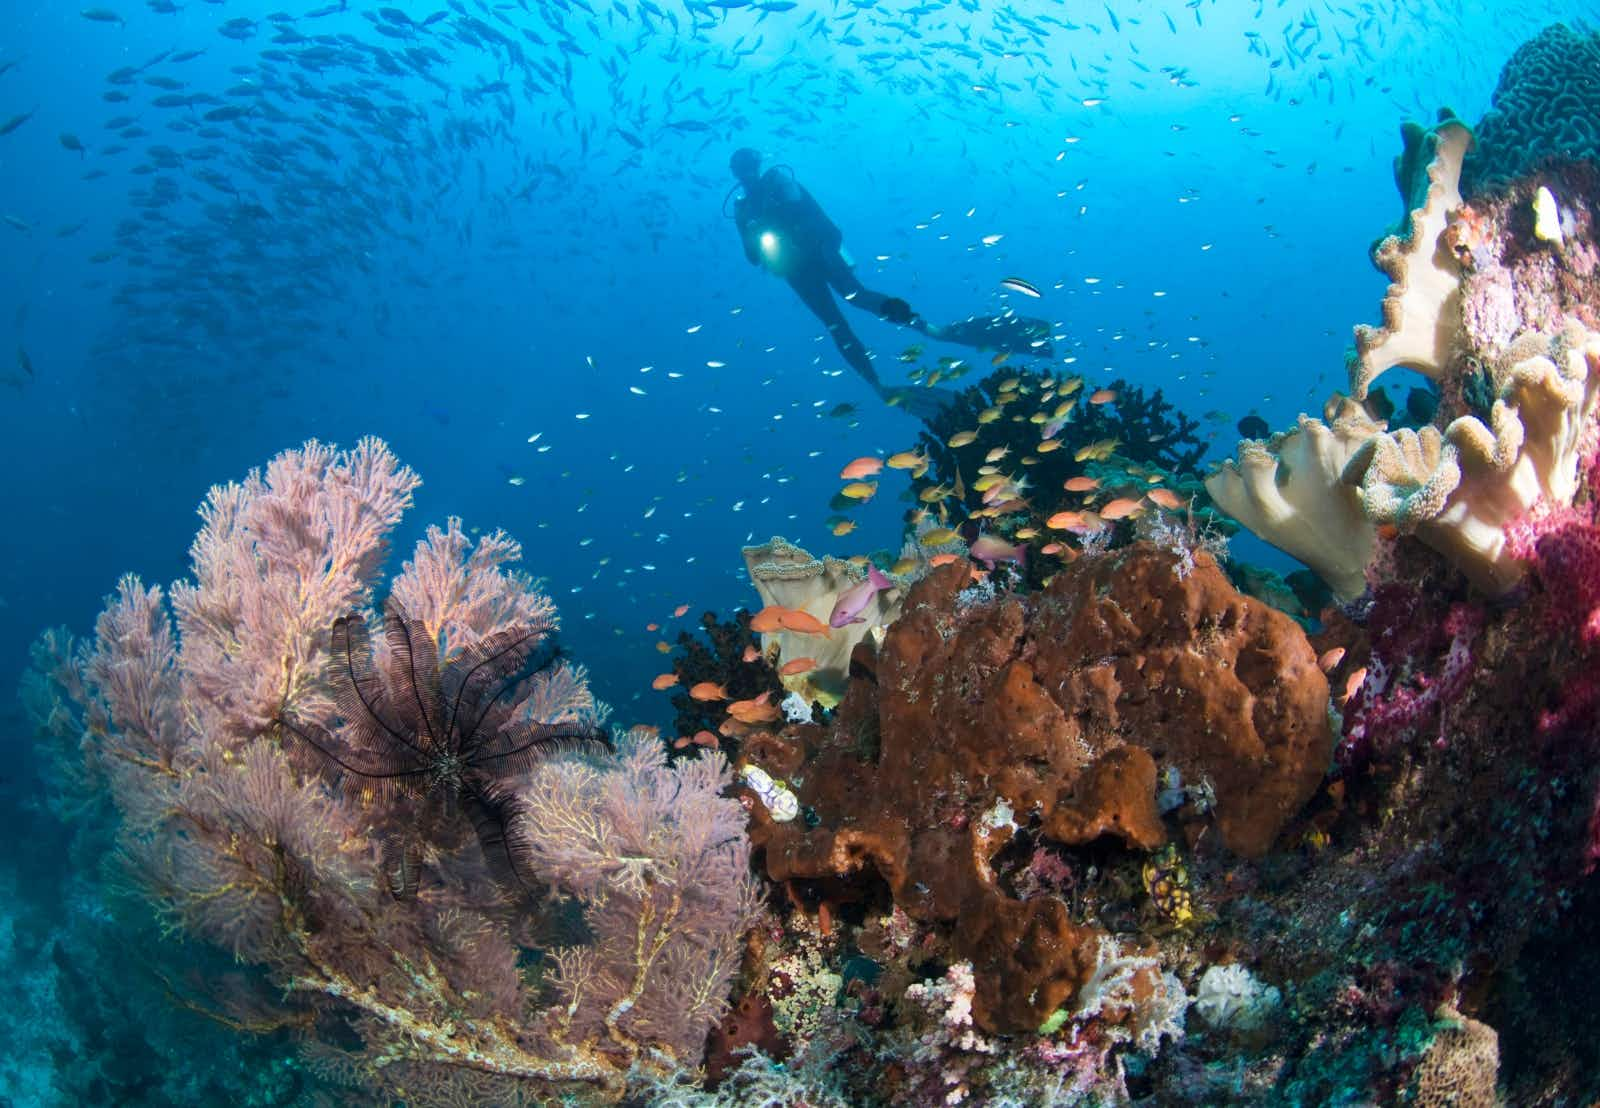 A diver explores the coral reef in Raja Ampat, Indonesia © Darryl Leniuk / Getty Images